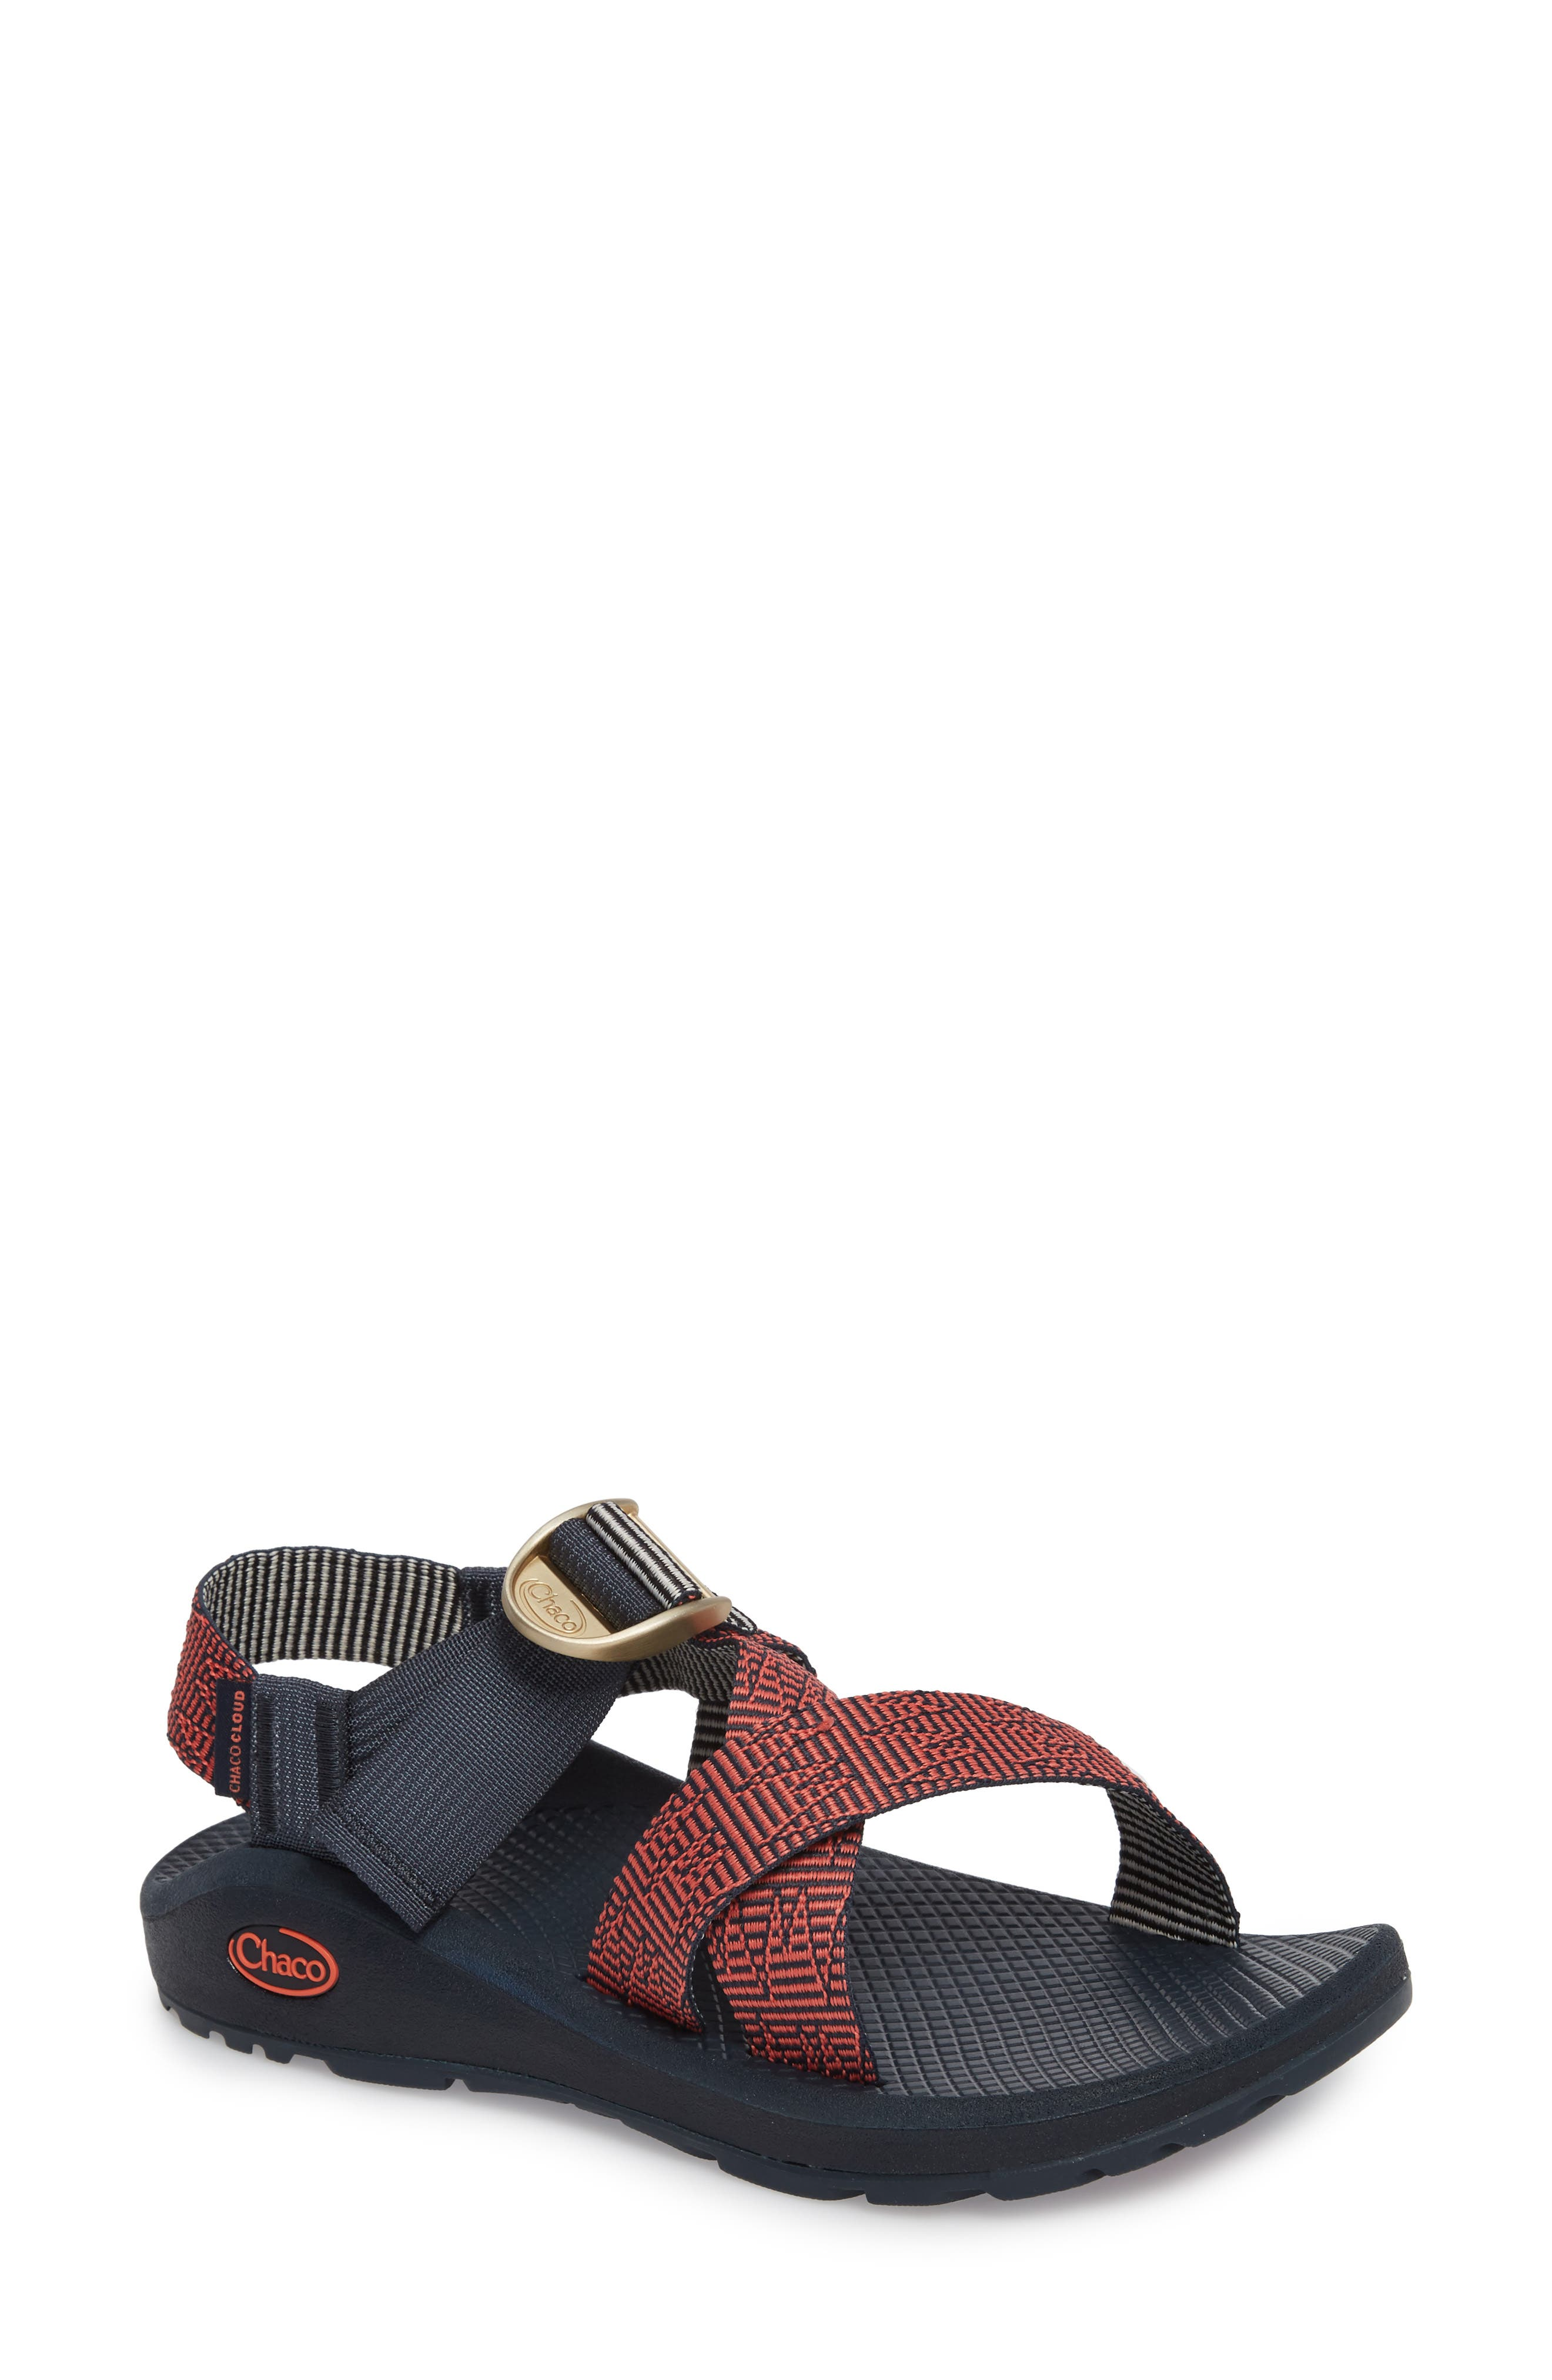 Mega Z/Cloud Sport Sandal,                         Main,                         color, Blazer Navy